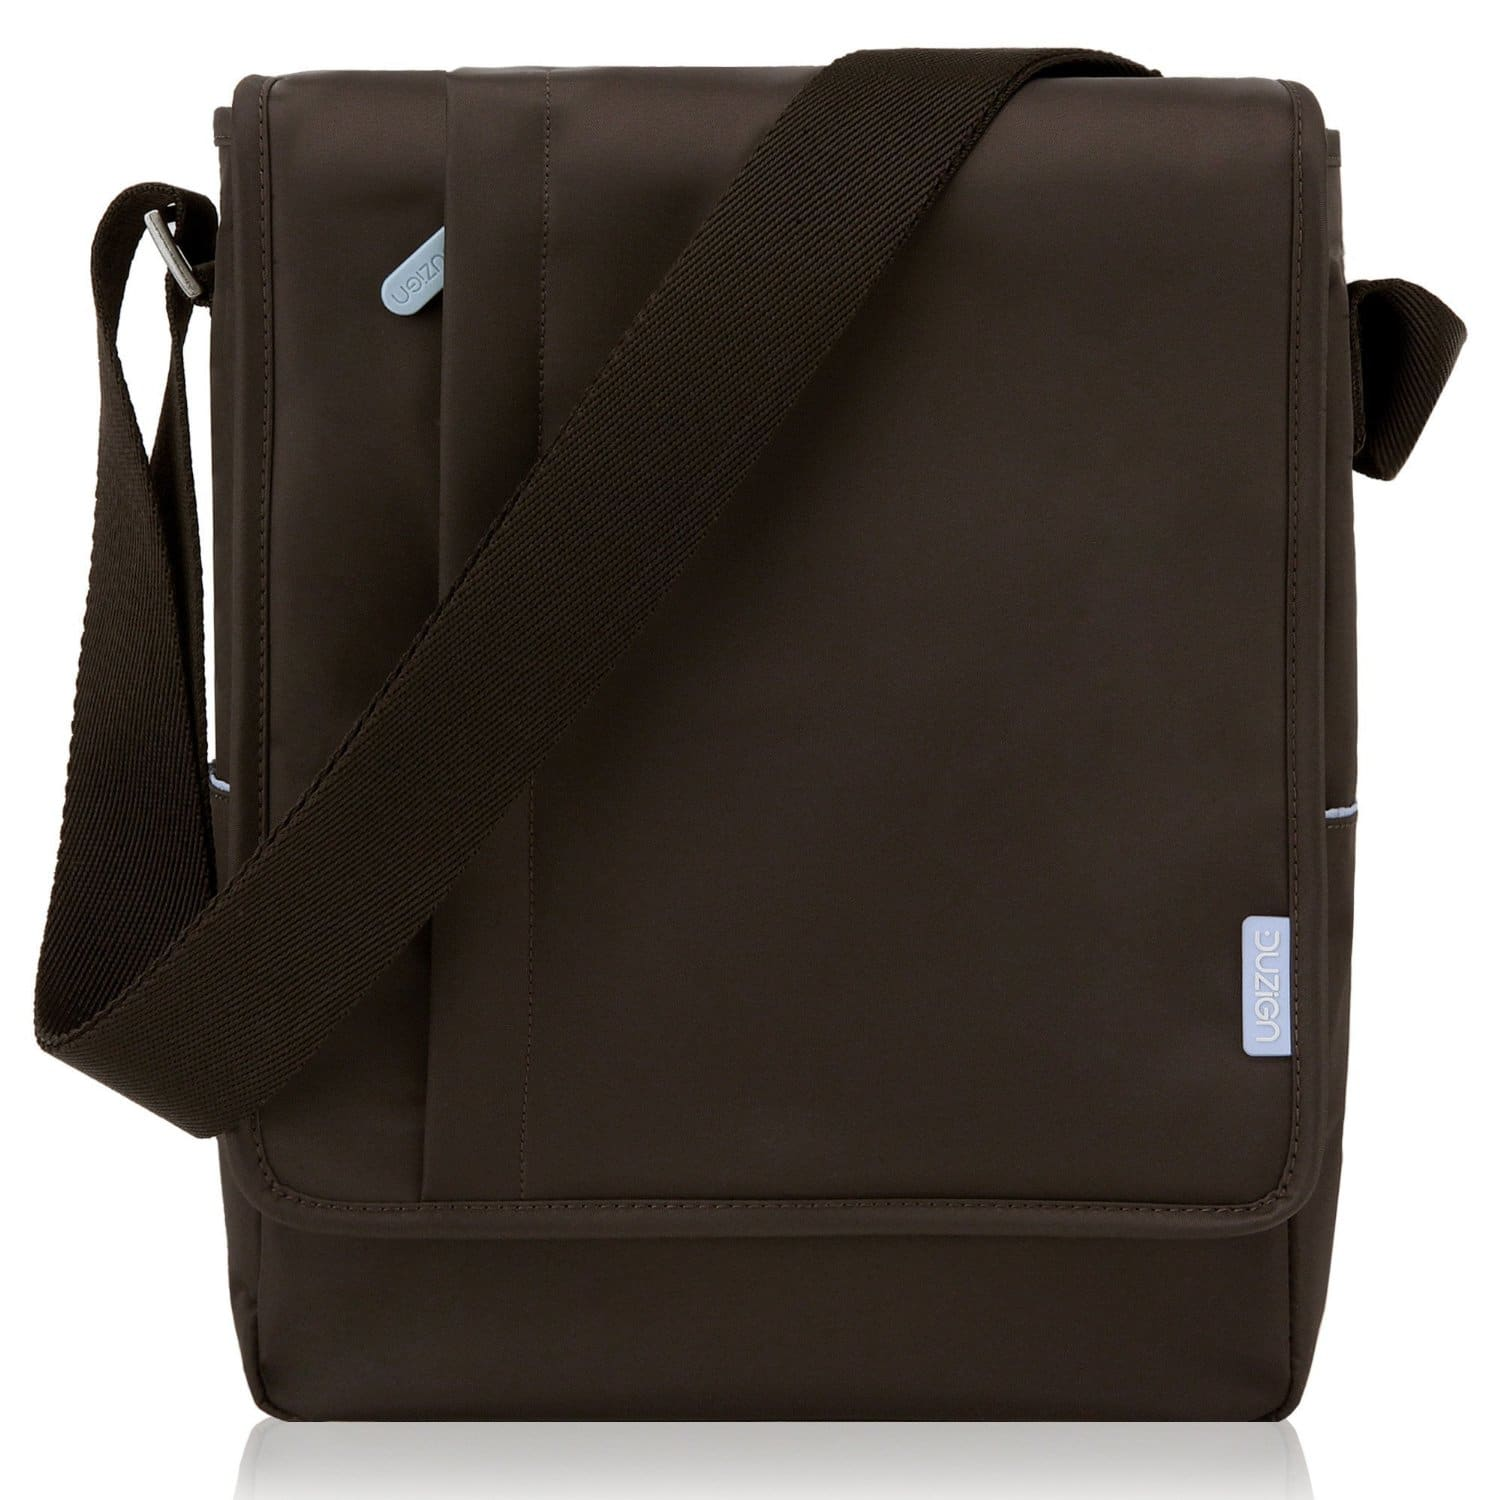 CaseCrown or Duzign Messenger Bag for Laptops/Surface Pro 3 (various styles)  $15 Each